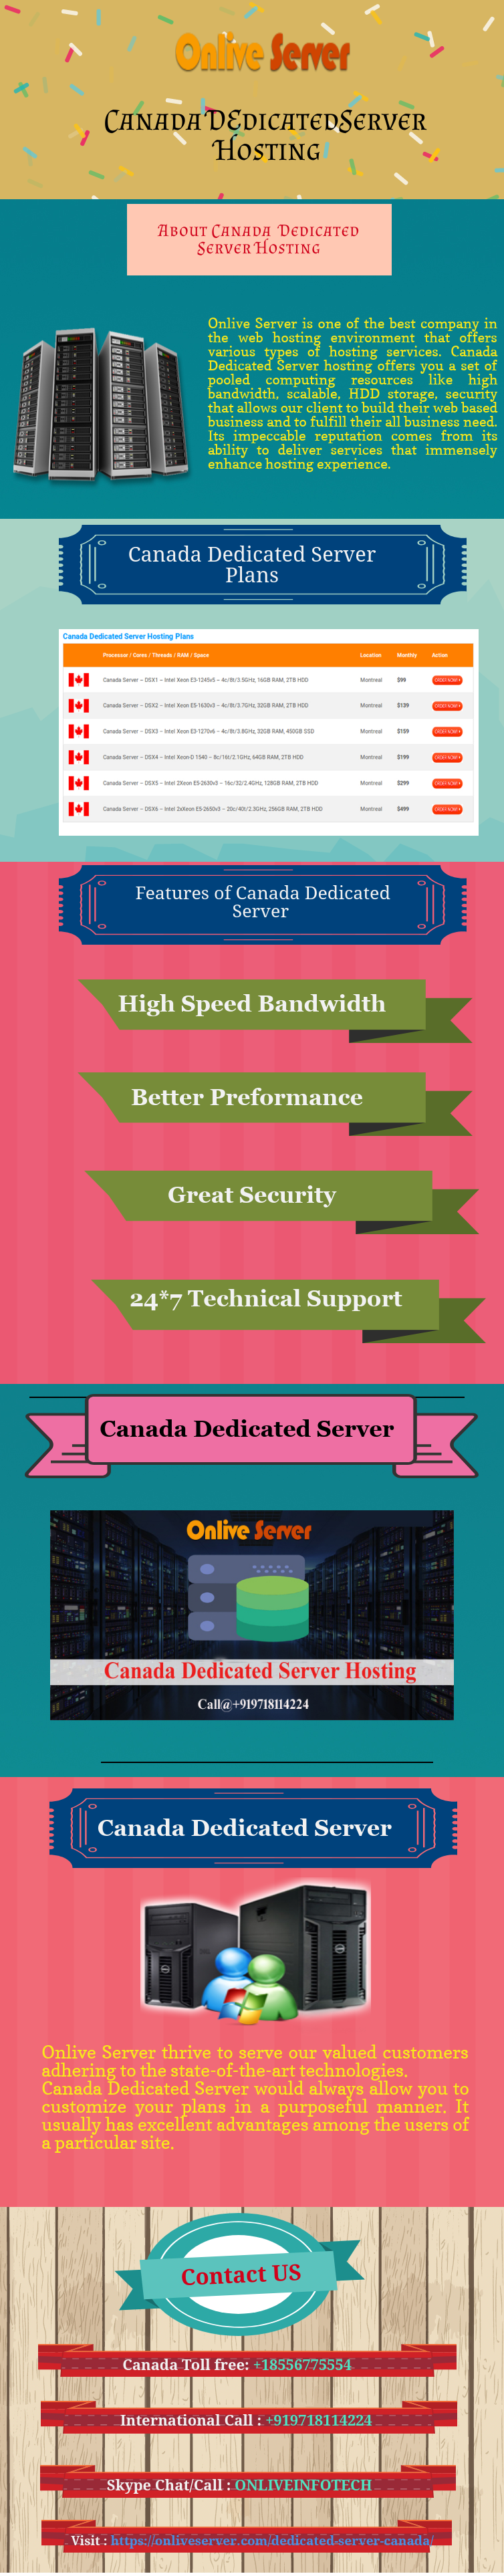 Canada Dedicated Server Hosting Plans by upasanaonlive on